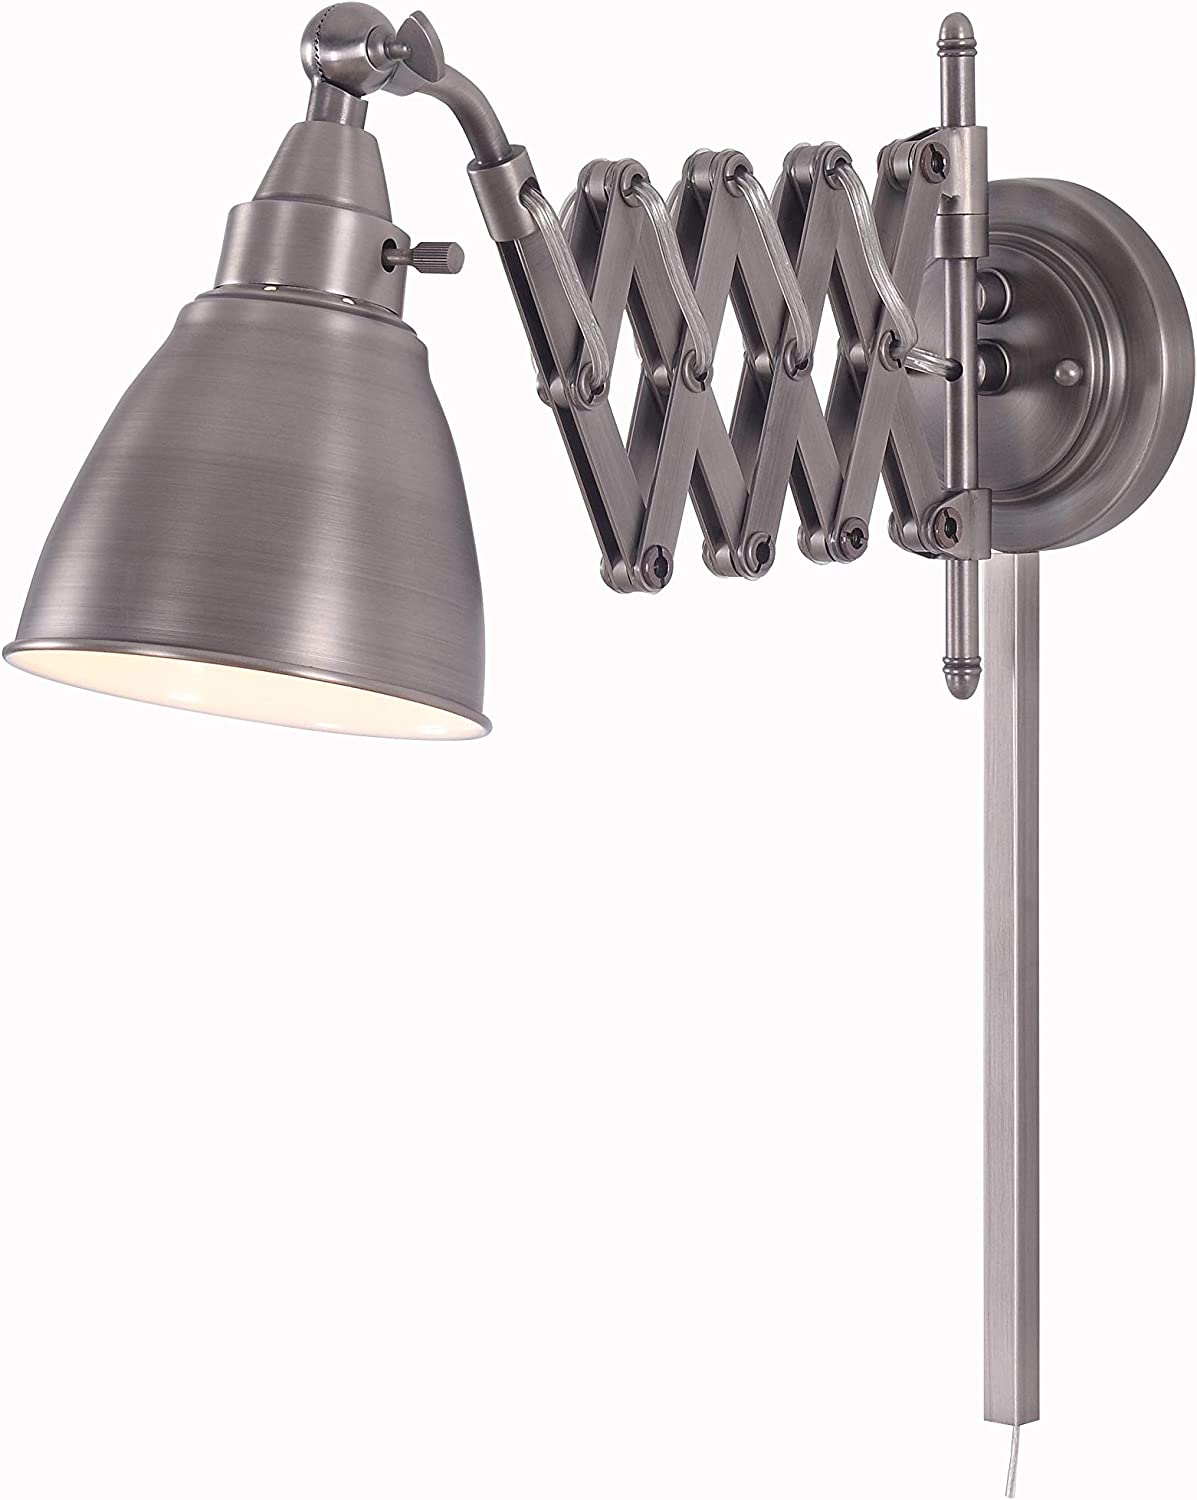 Kenroy Home Kenroy 32197ANI Transitional One Light Swing Arm Wall Lamp from Floren Collection in Pwt, Nckl, B/S, Slvr. Finish, Antique Nickel